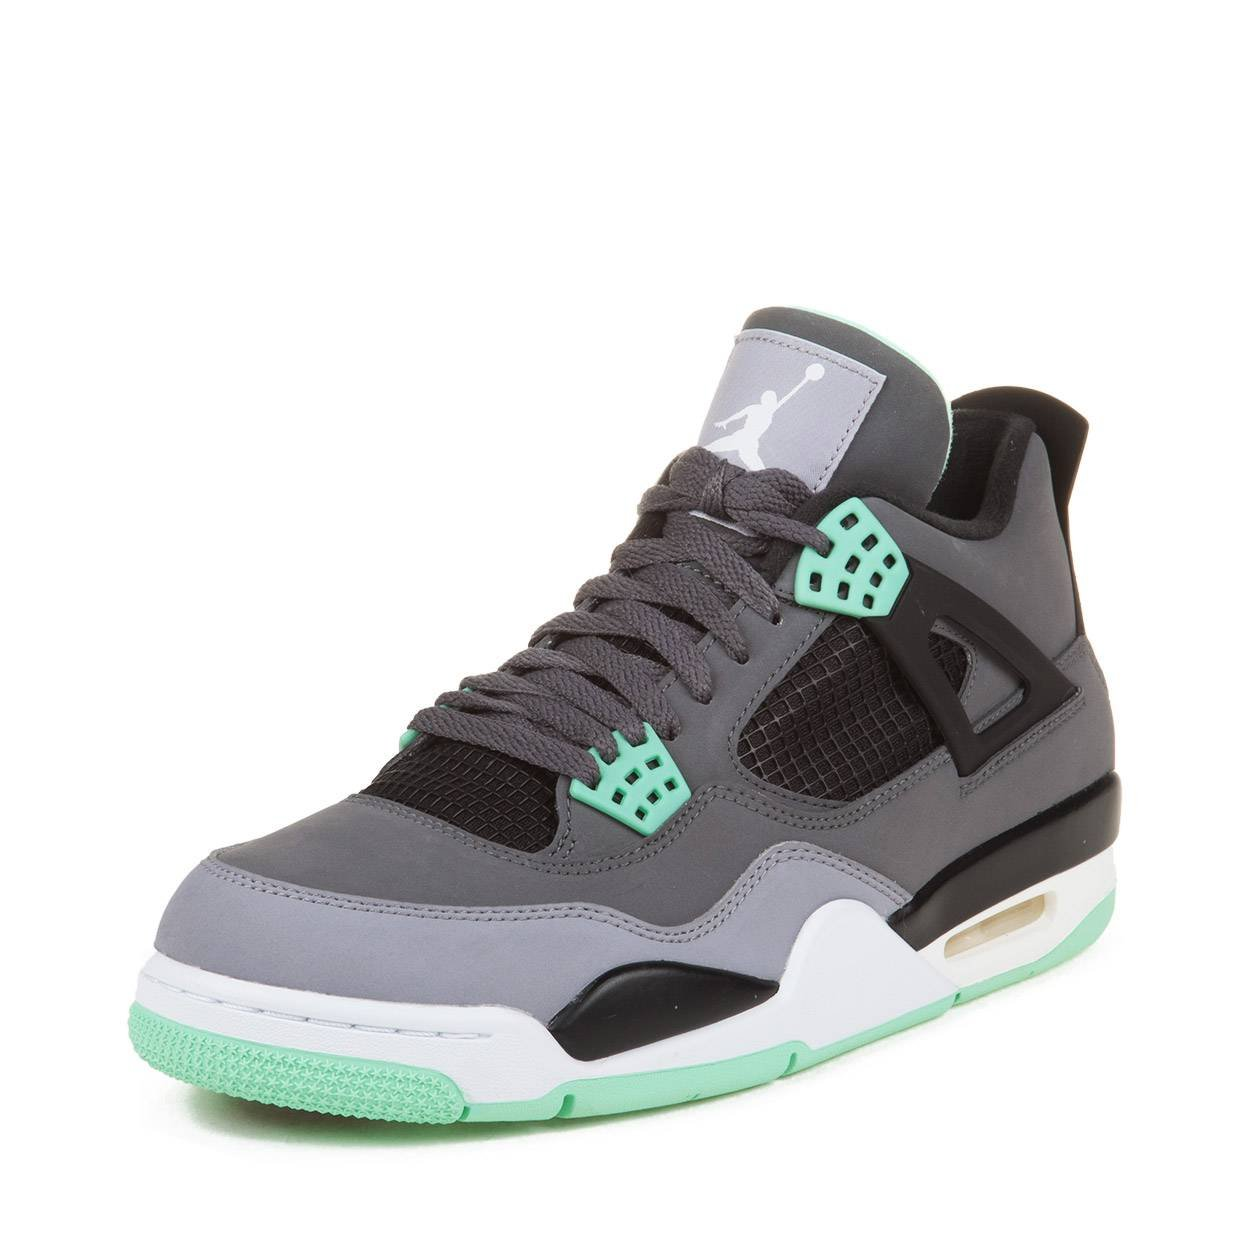 Jordan Nike Mens Air 4 Retro Dark Grey/Green Glow-Cement Grey Leather Basketball Shoes Size 8